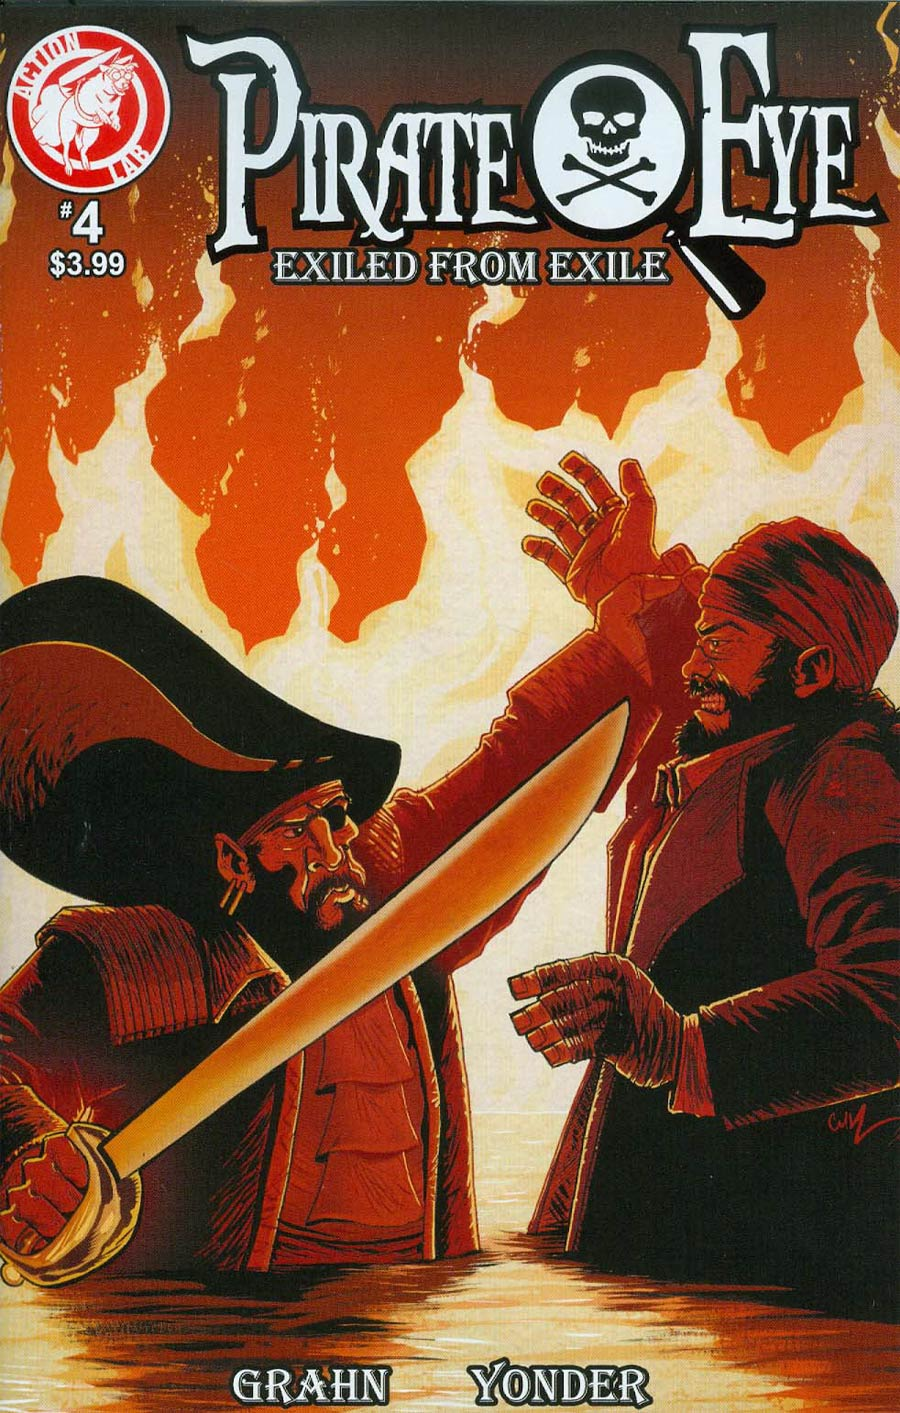 Pirate Eye Exiled From Exile #4